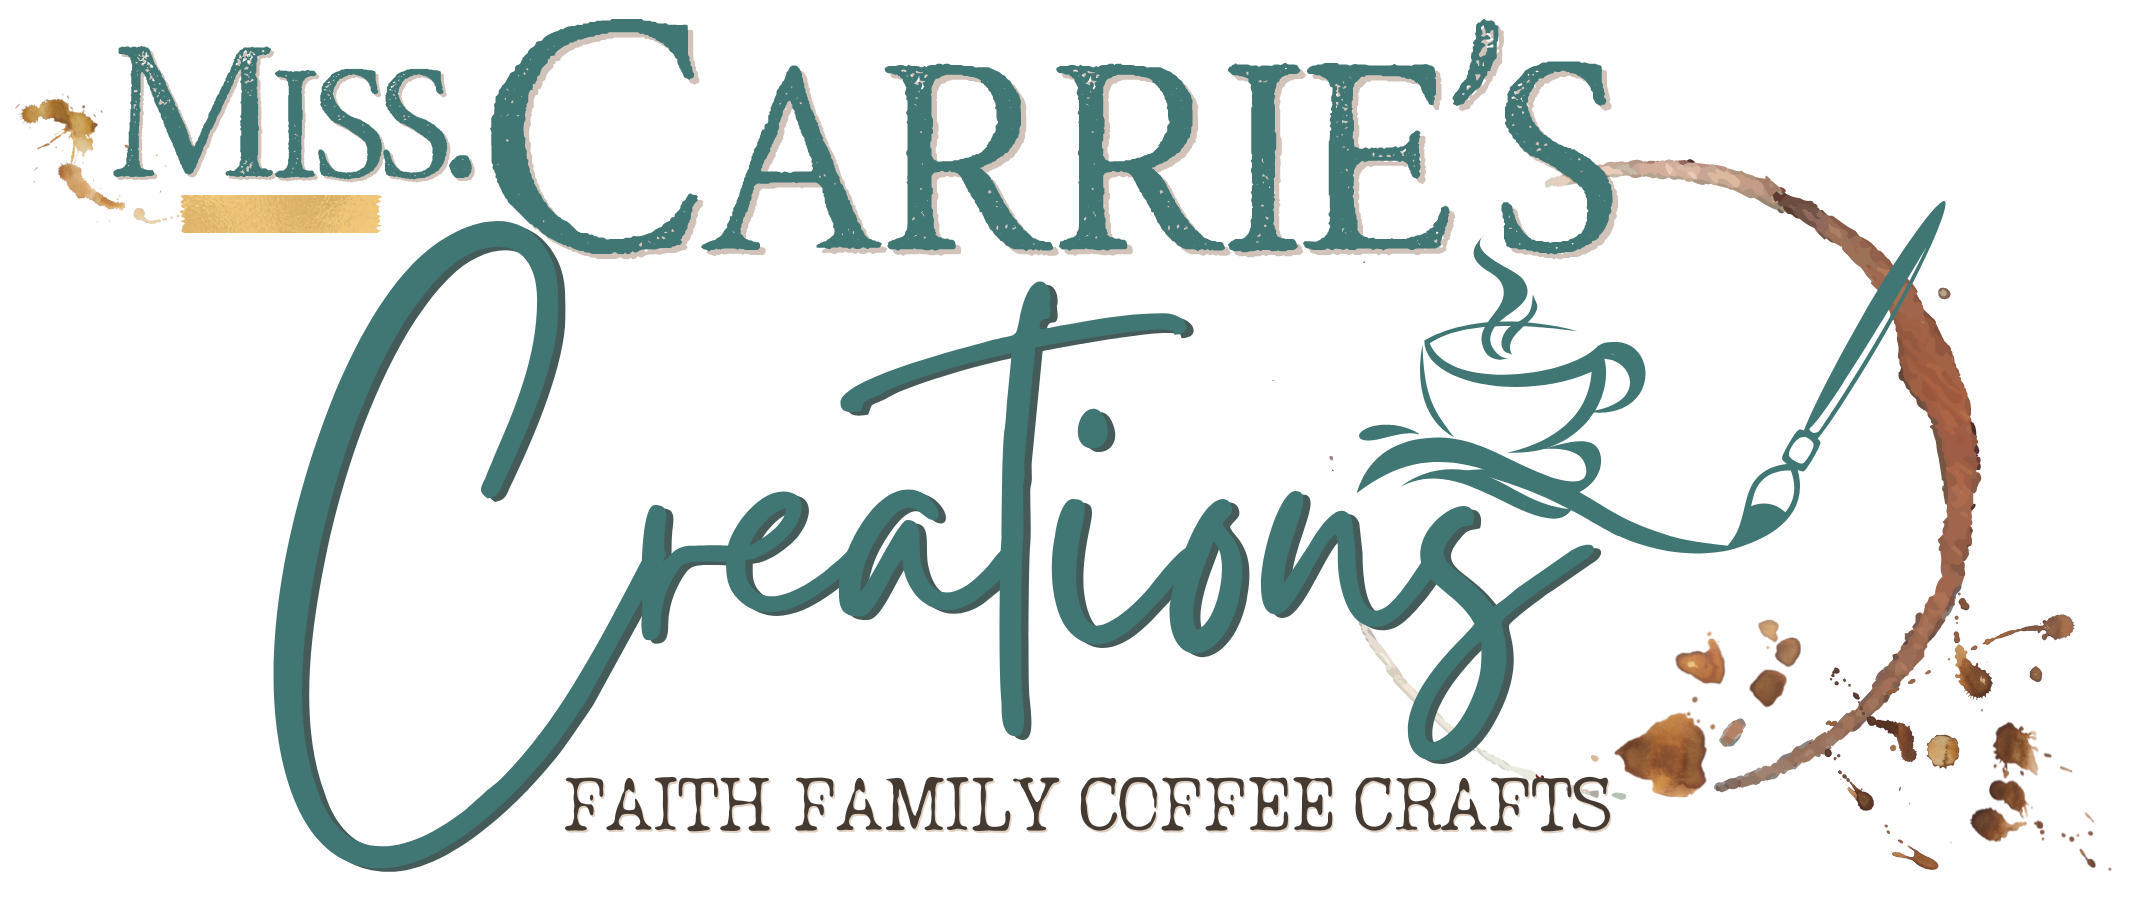 Miss. Carrie's Creations